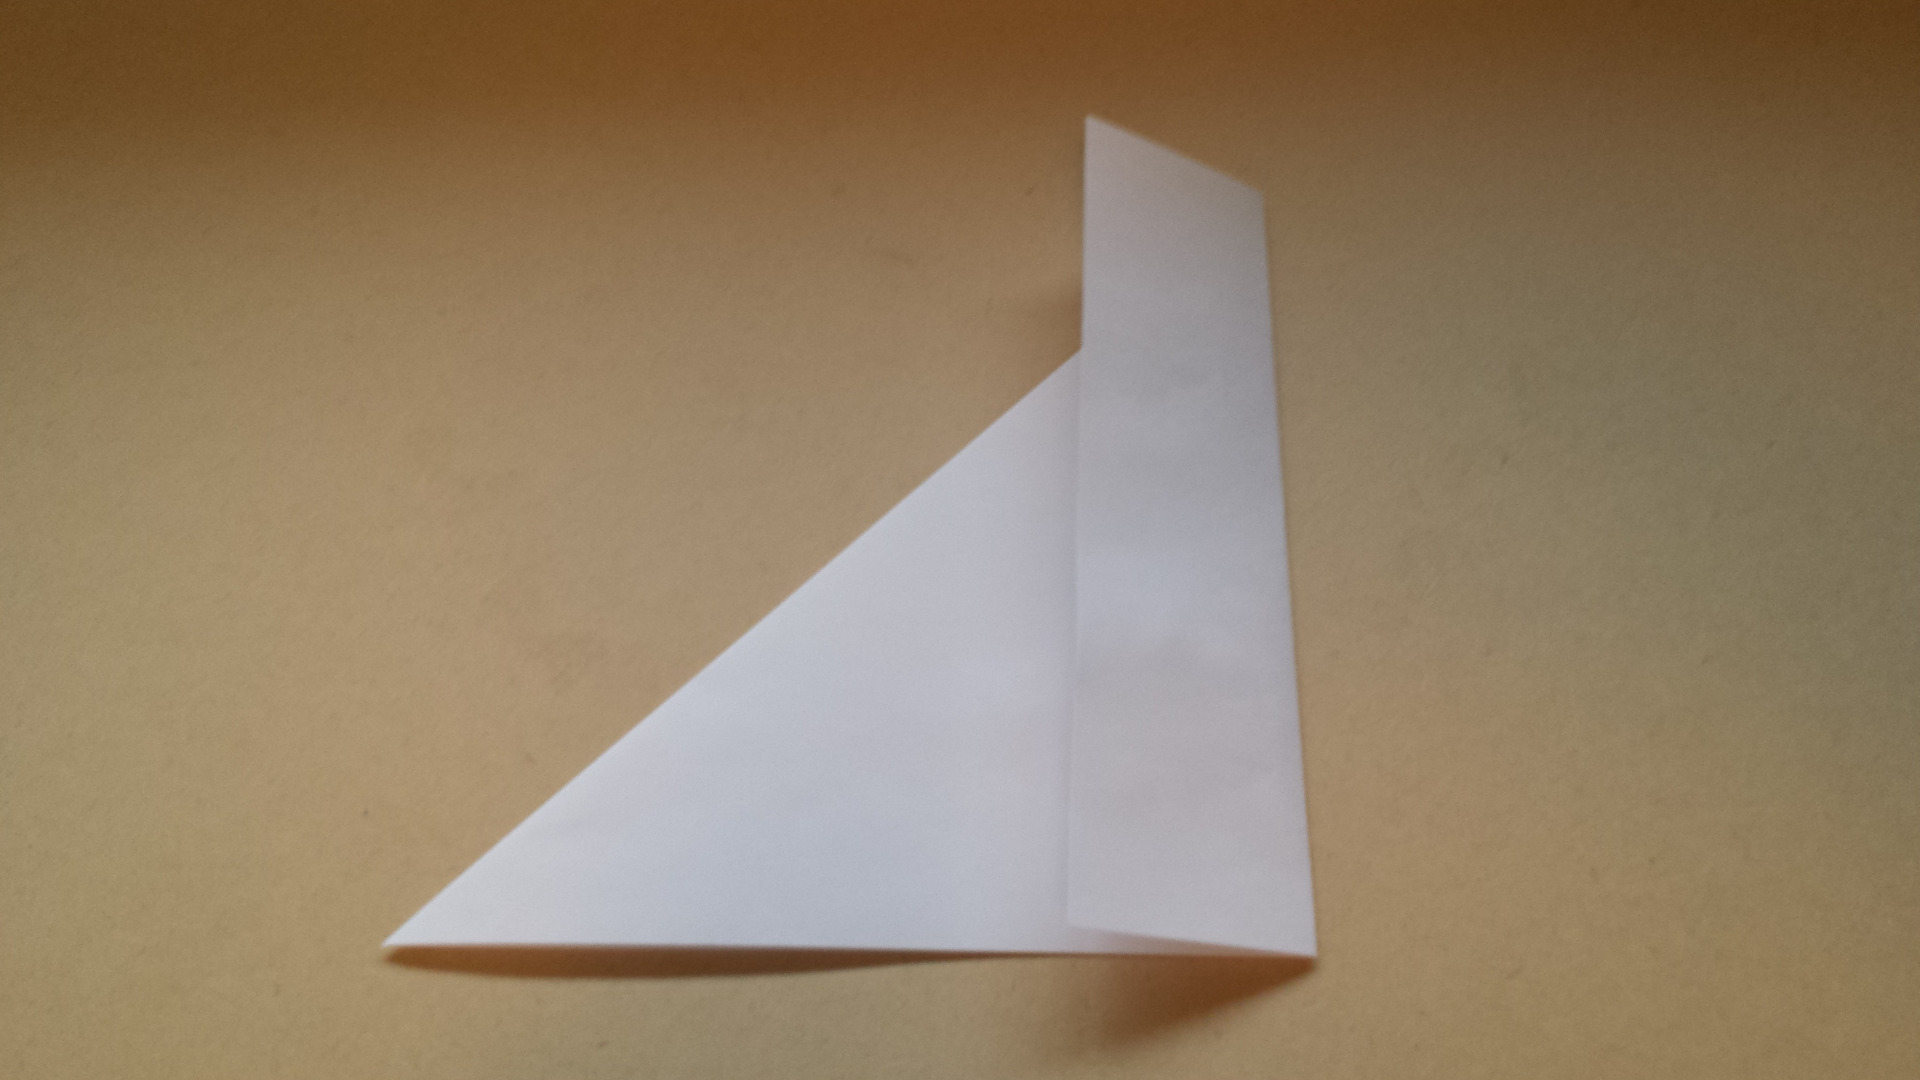 Picture of Flip Over and Fold the Excess Rectangular Strip Across Triangle Edge